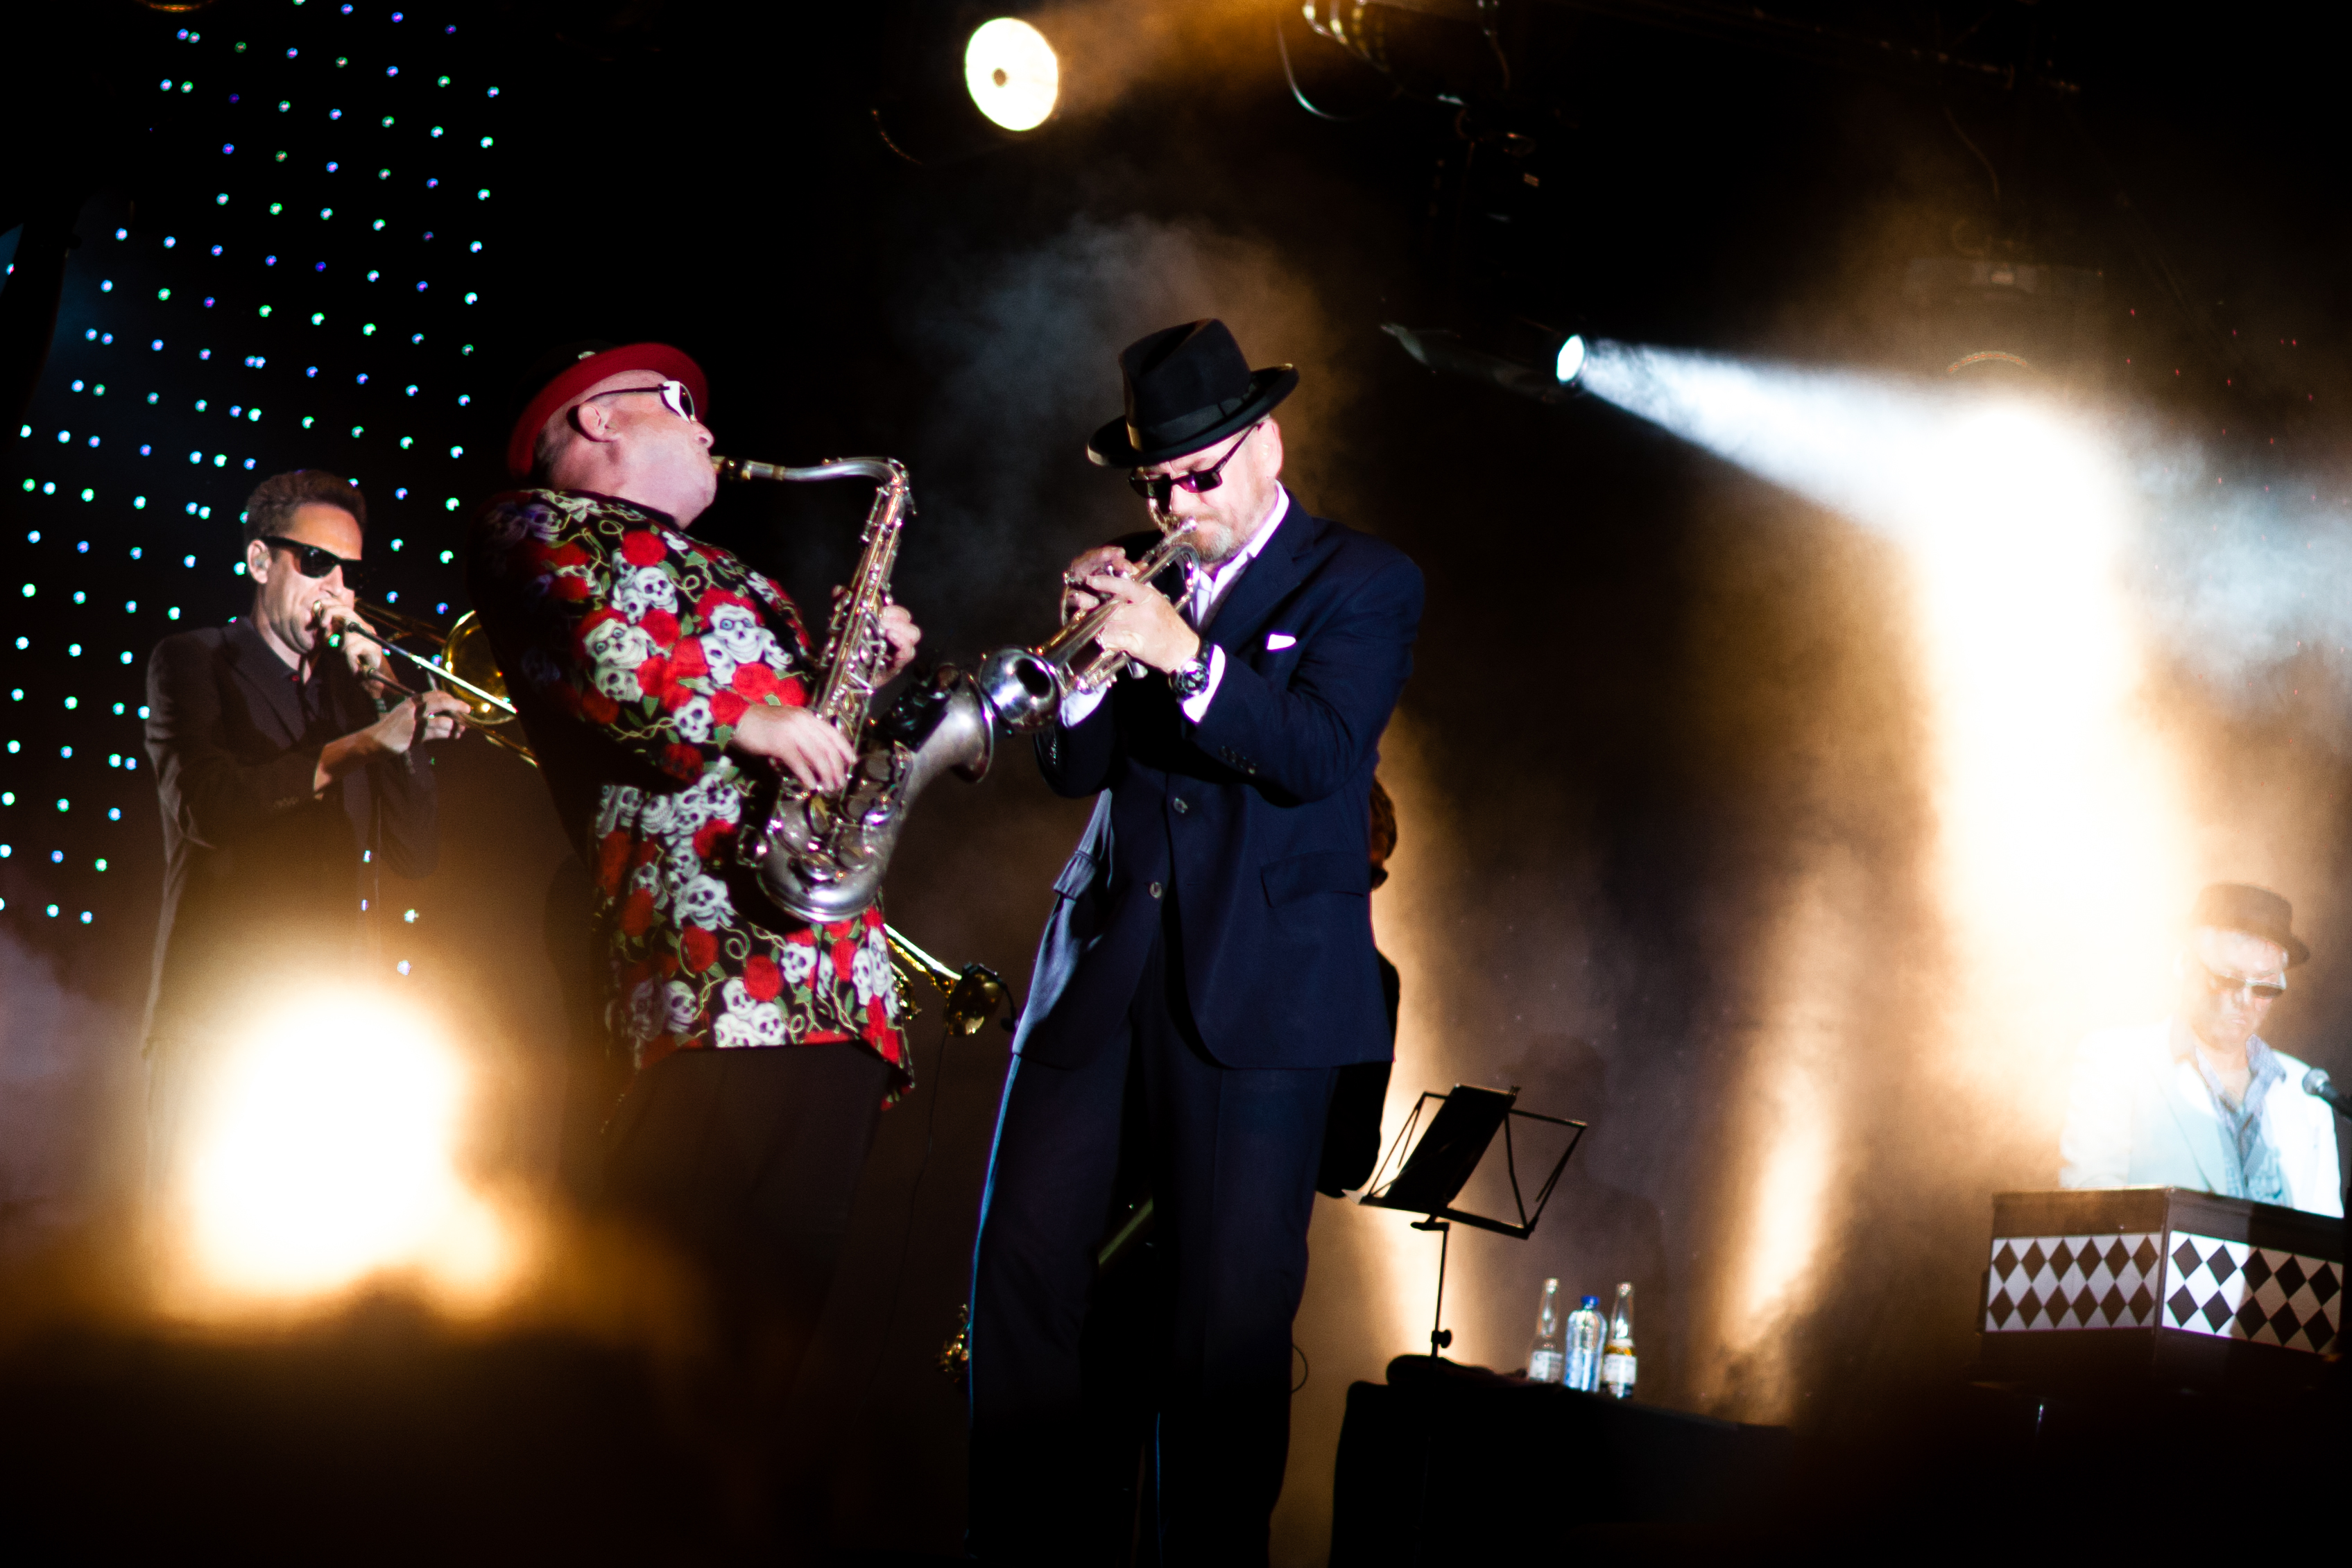 Madness @ Night at the park 2014, 40D, Madness, People, Pays-Bas, HQ Photo